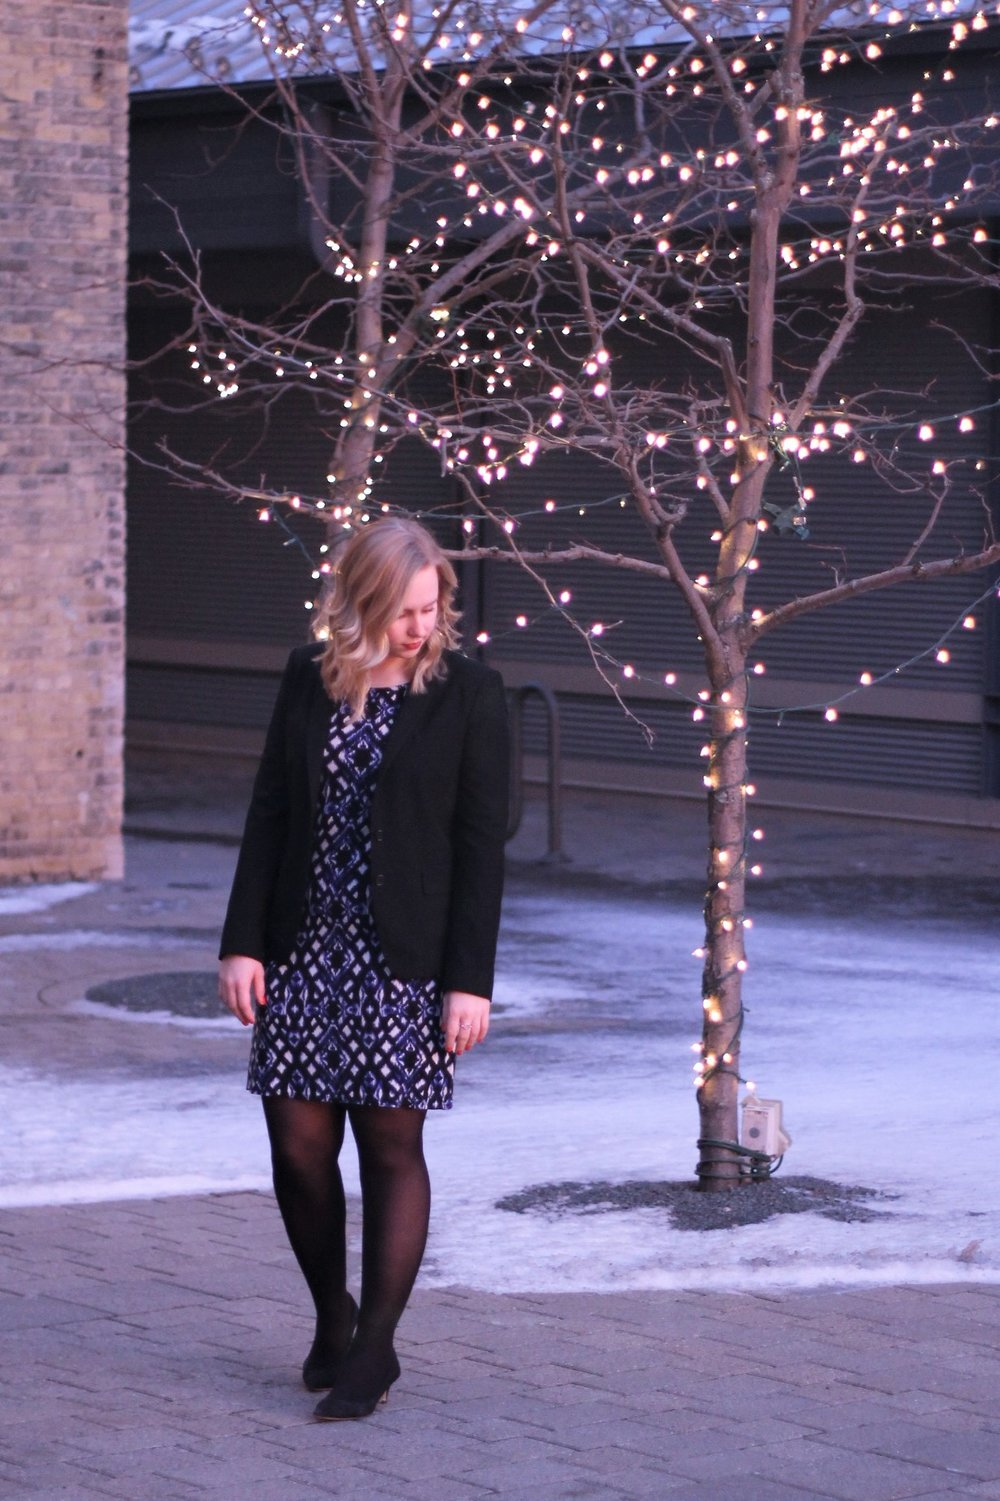 Back to Work | Business Formal to Kick Off the New Year | Work & What She Wore